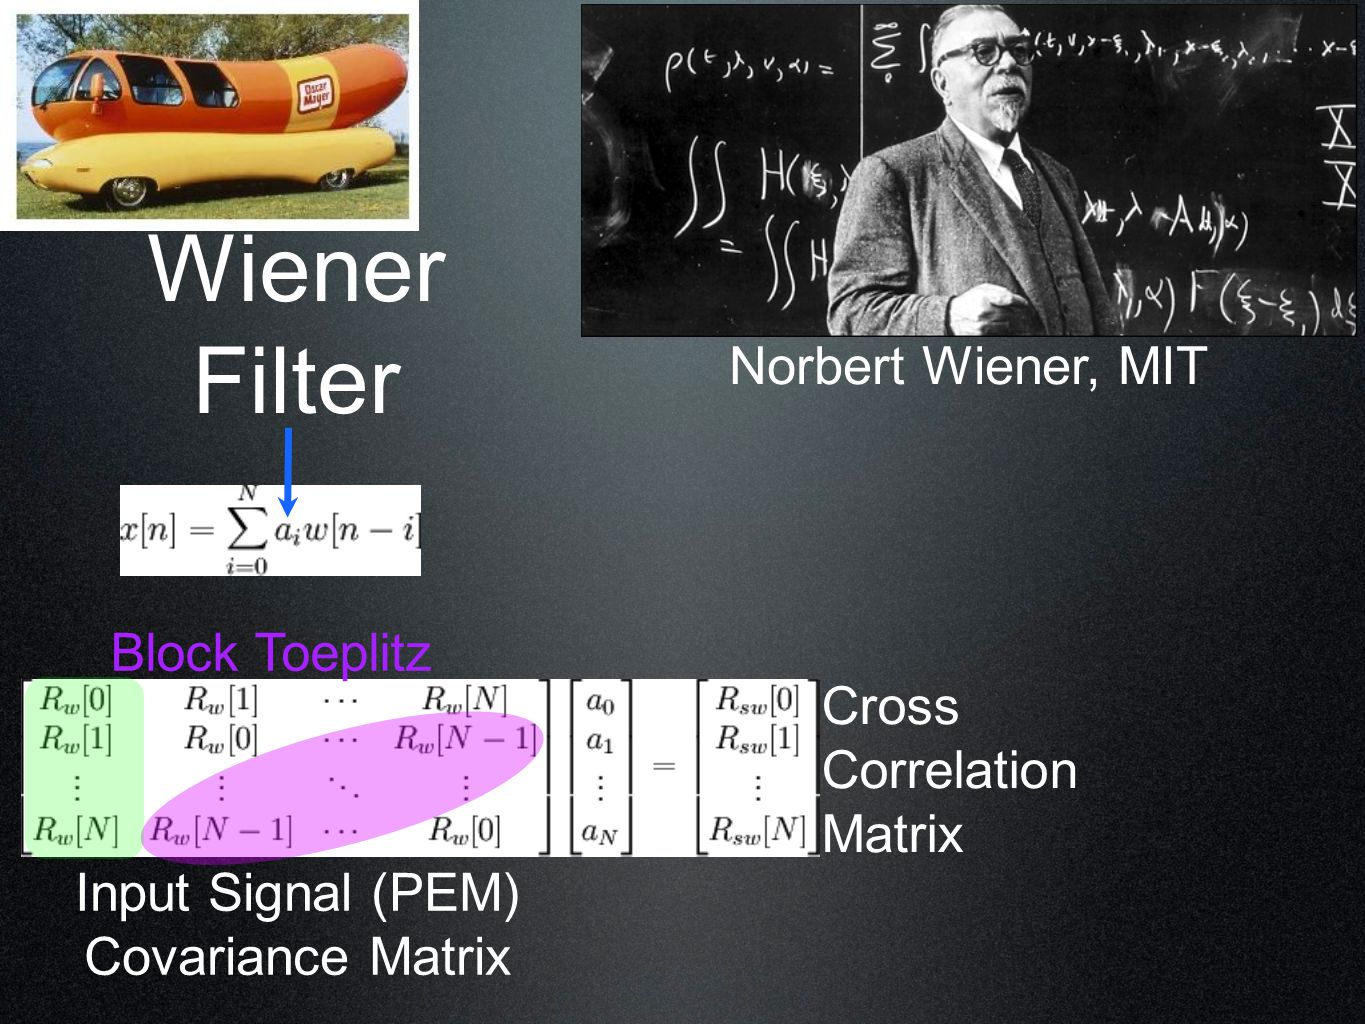 Wiener Filter Input Signal (PEM) Covariance Matrix Norbert Wiener, MIT Block Toeplitz Cross Correlation Matrix